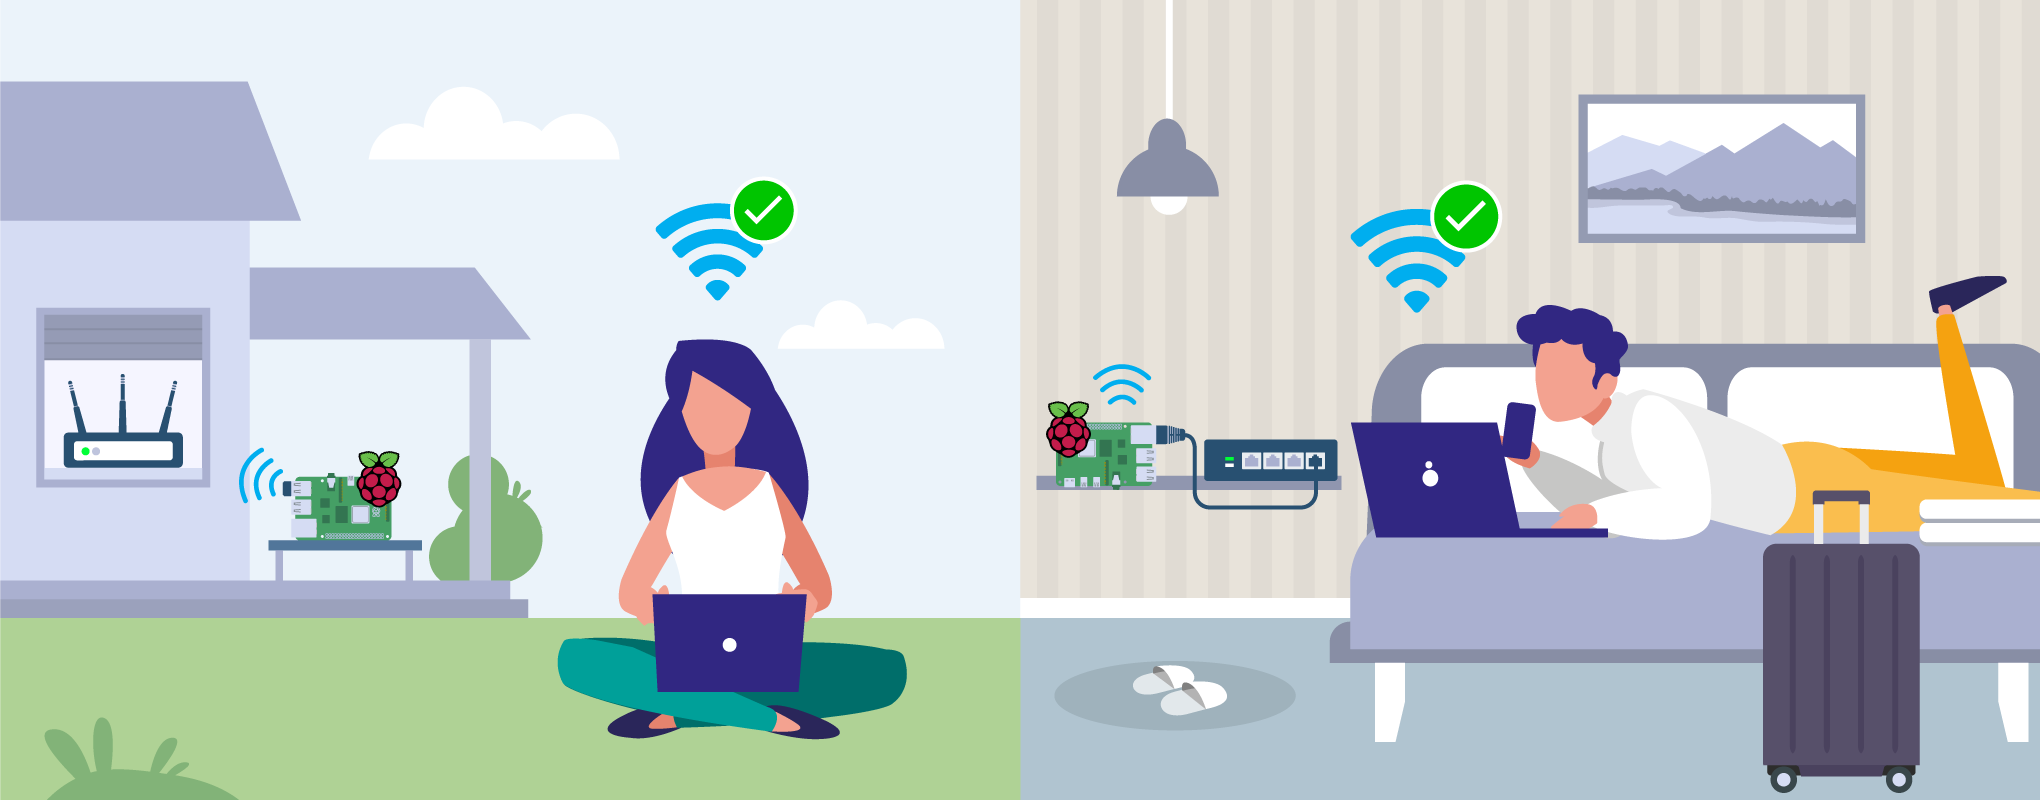 Extend Wi-Fi coverage with this project